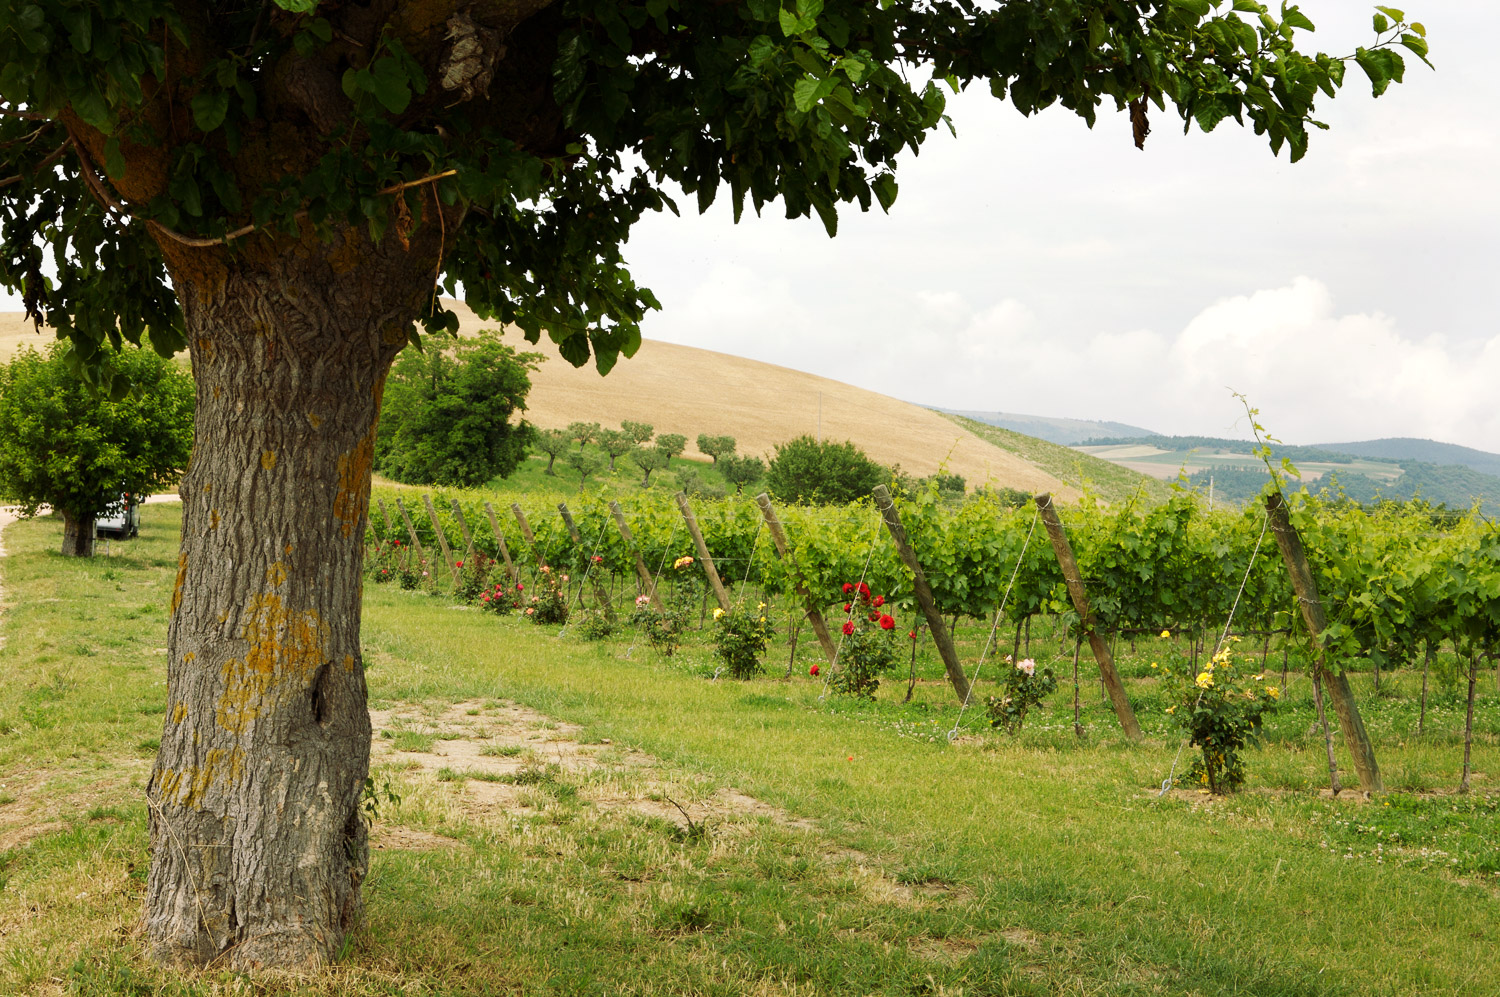 A typical Le Marche vineyard with roses at the end of each line of vines